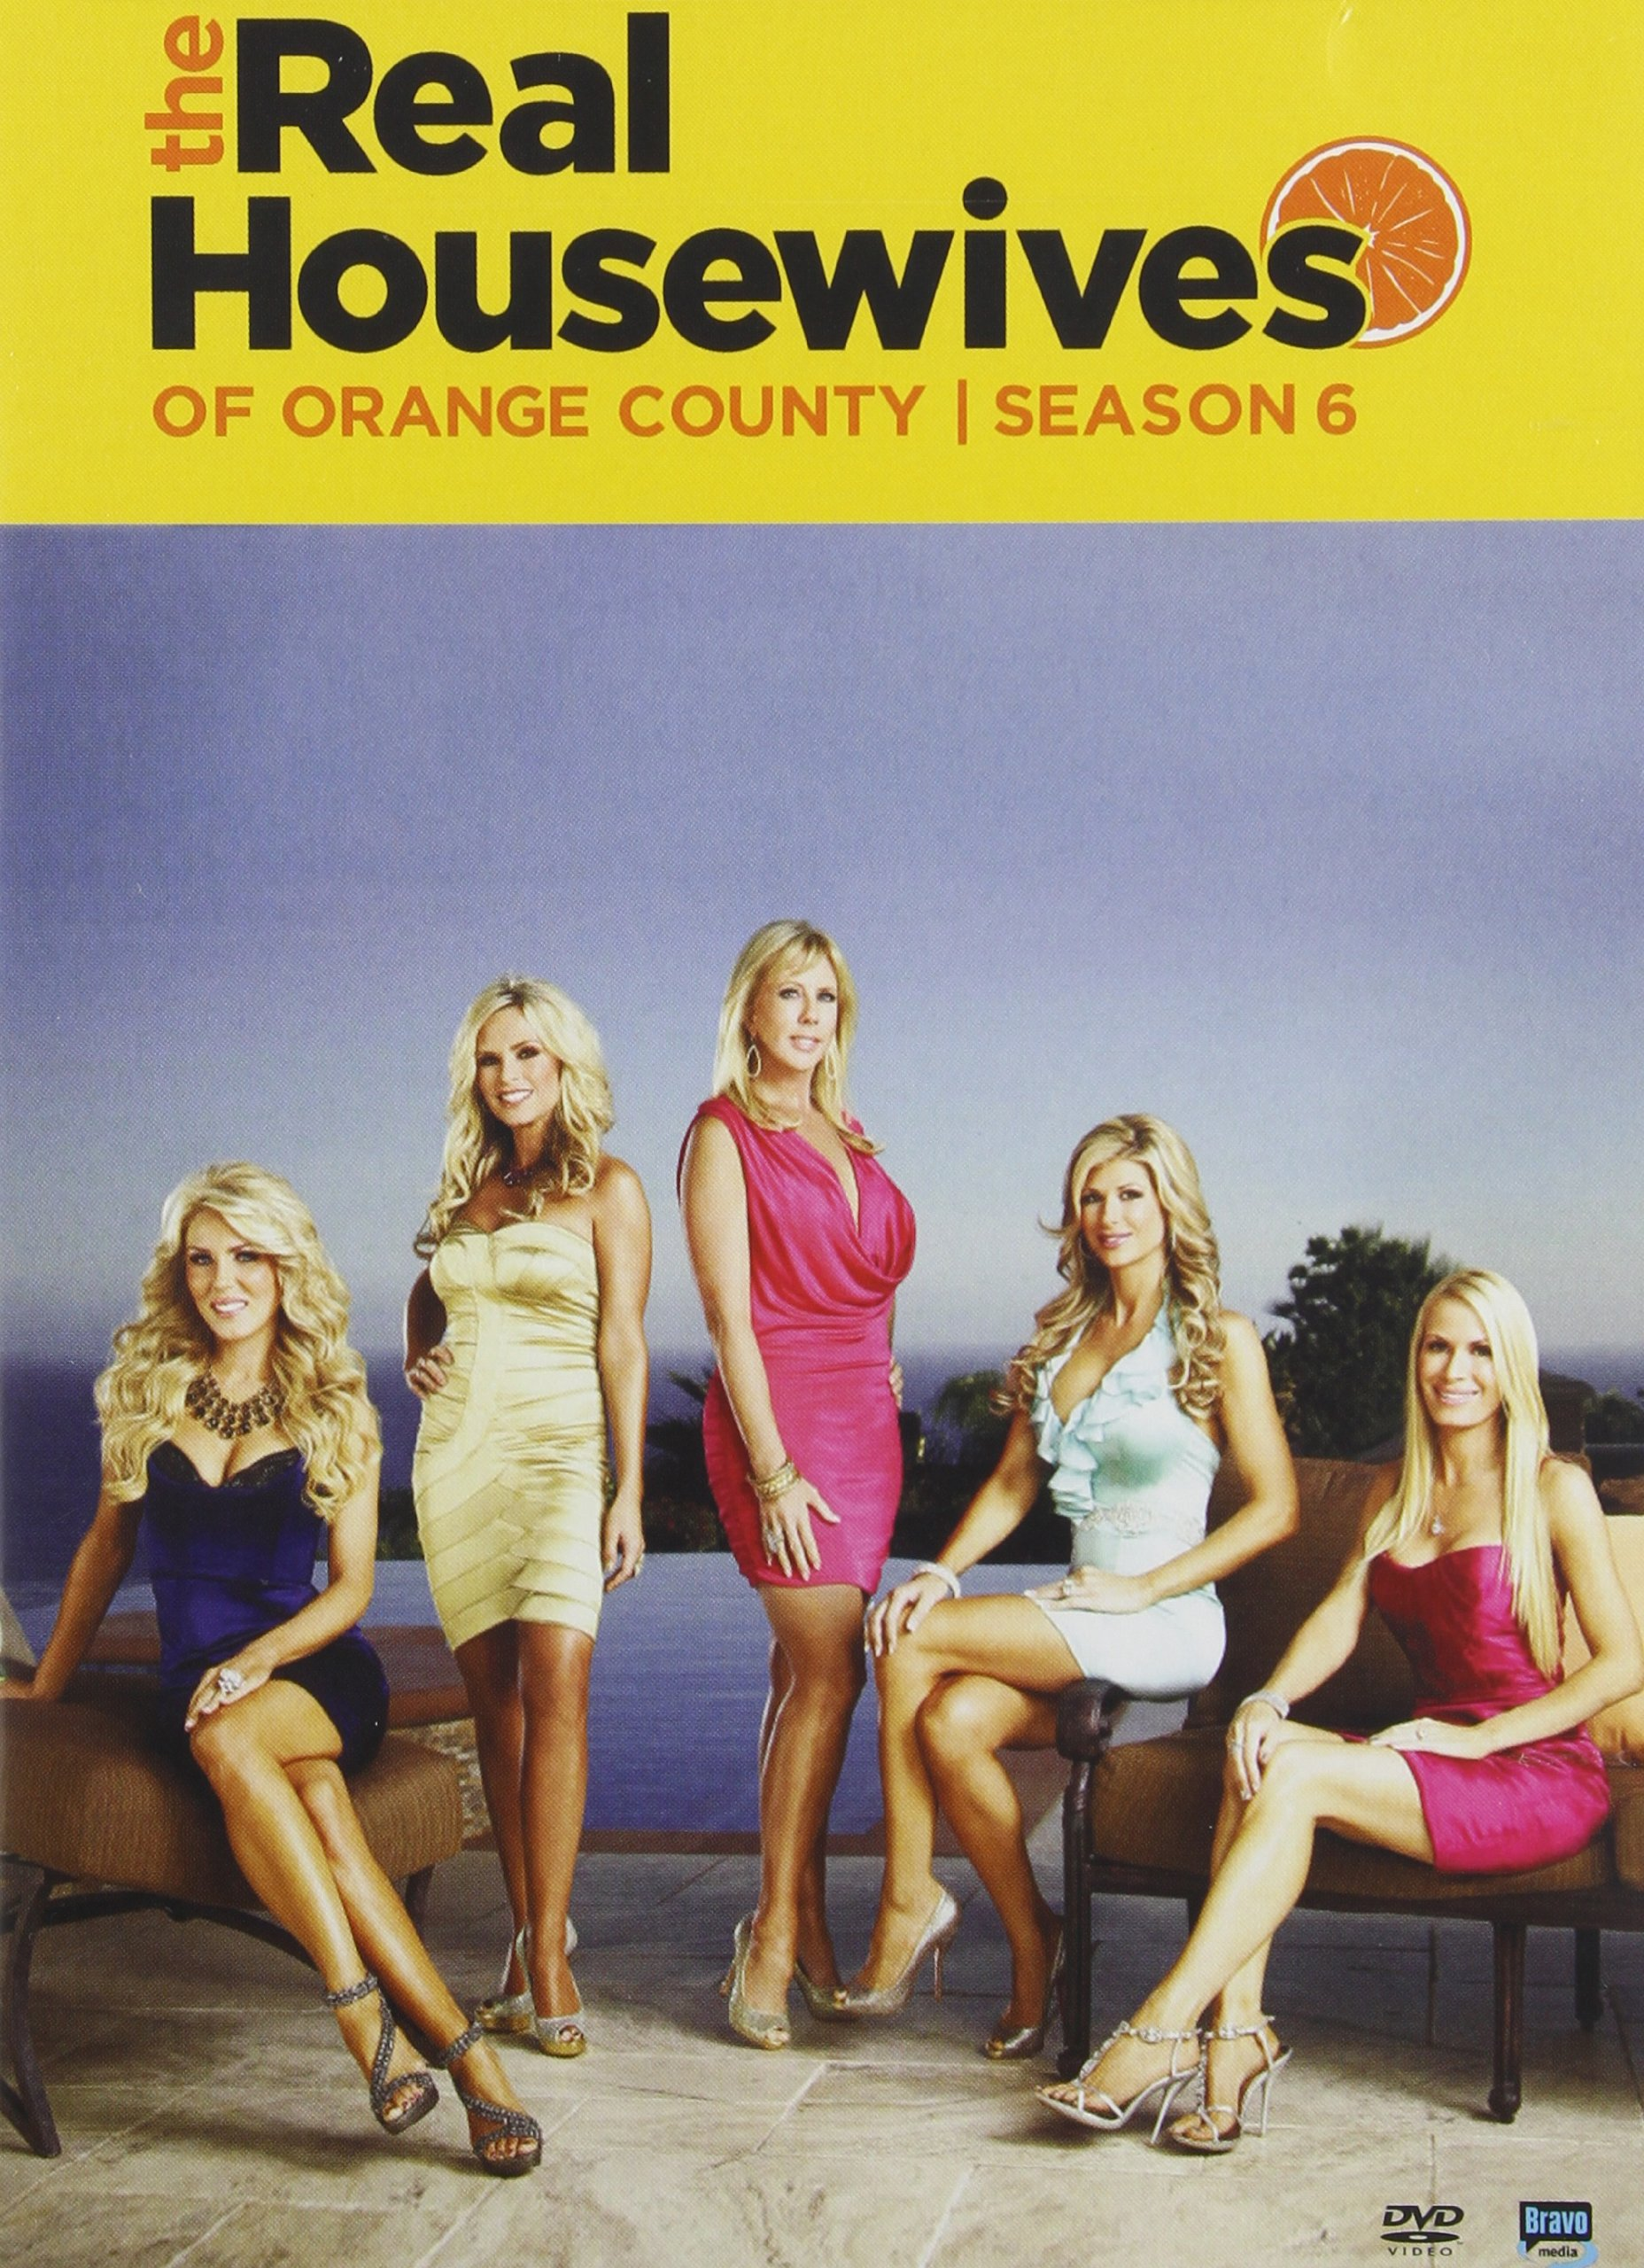 The Real Housewives of Orange County: Season 6 by Bravo Media